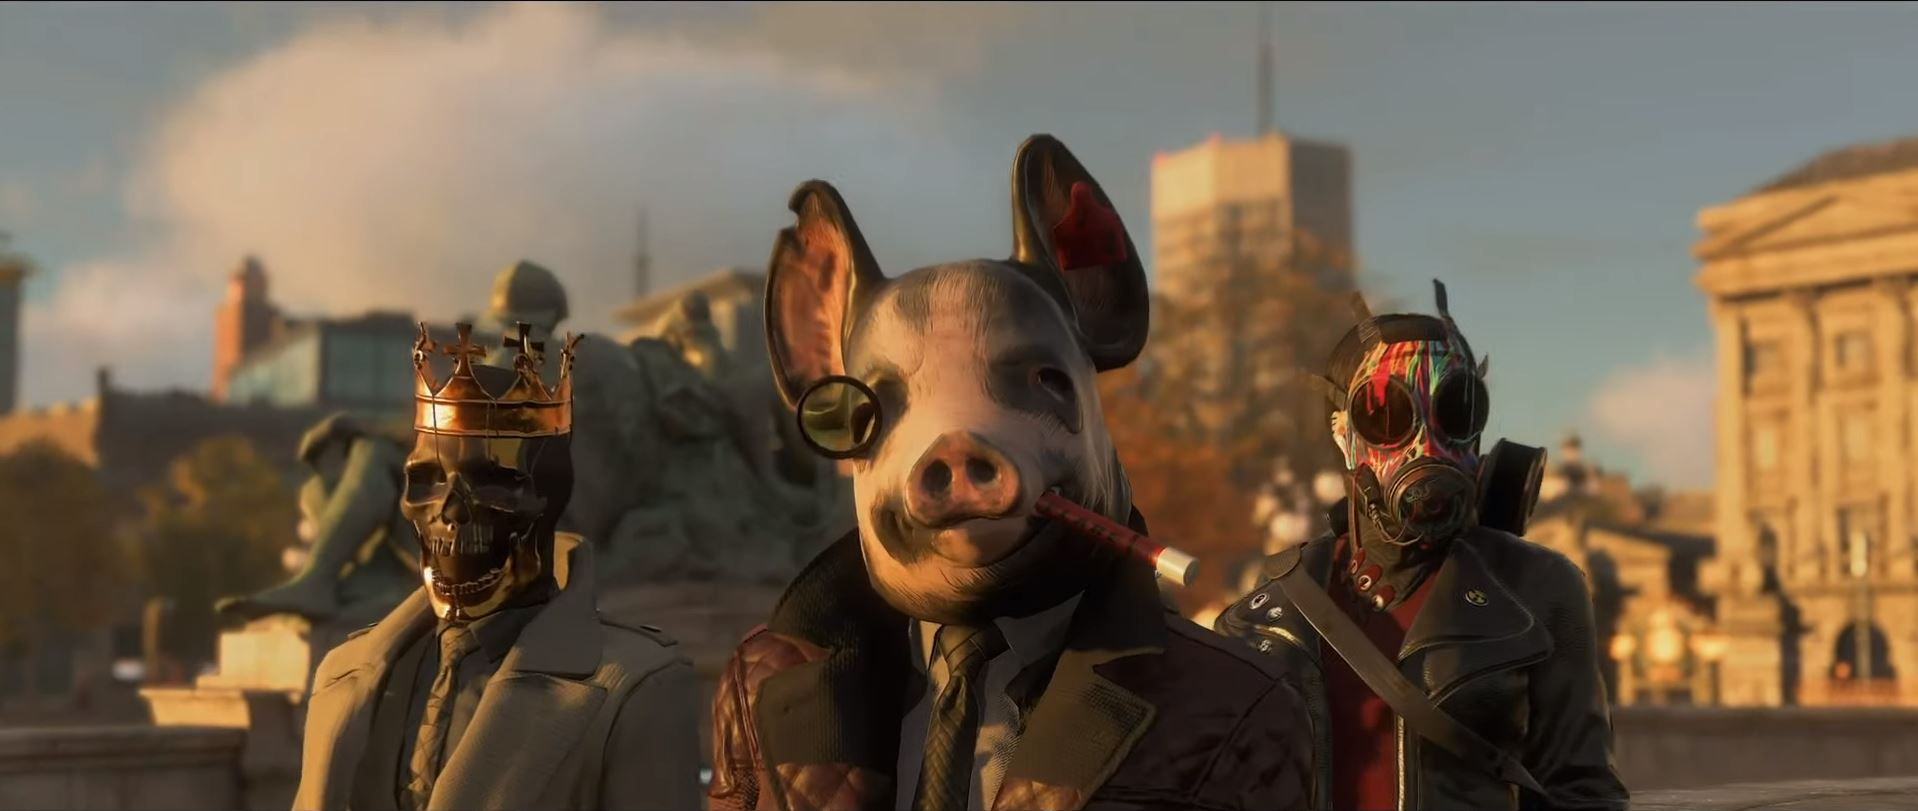 Watch Dogs Legion Release Date Trailer Gameplay And News Den Of Geek